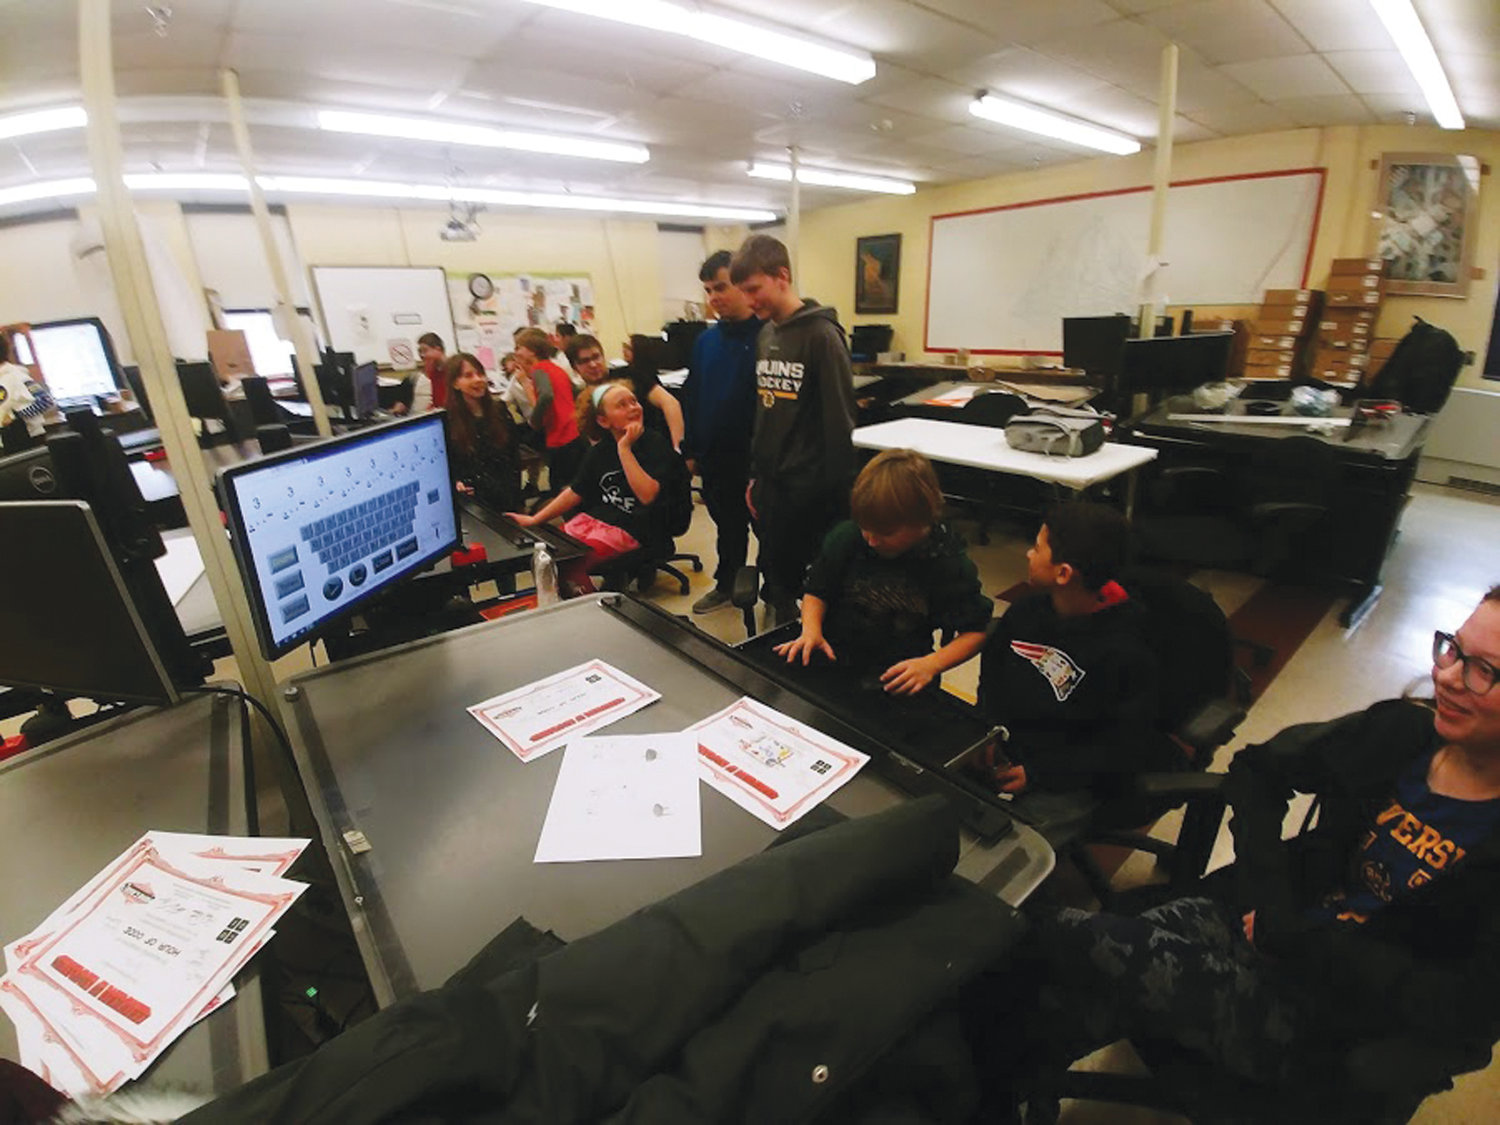 CAD AND MUSIC: The visiting elementary school students enjoyed the hands-on activities that they participated in with the help of the high school students in the CAD/Drafting pathways program.